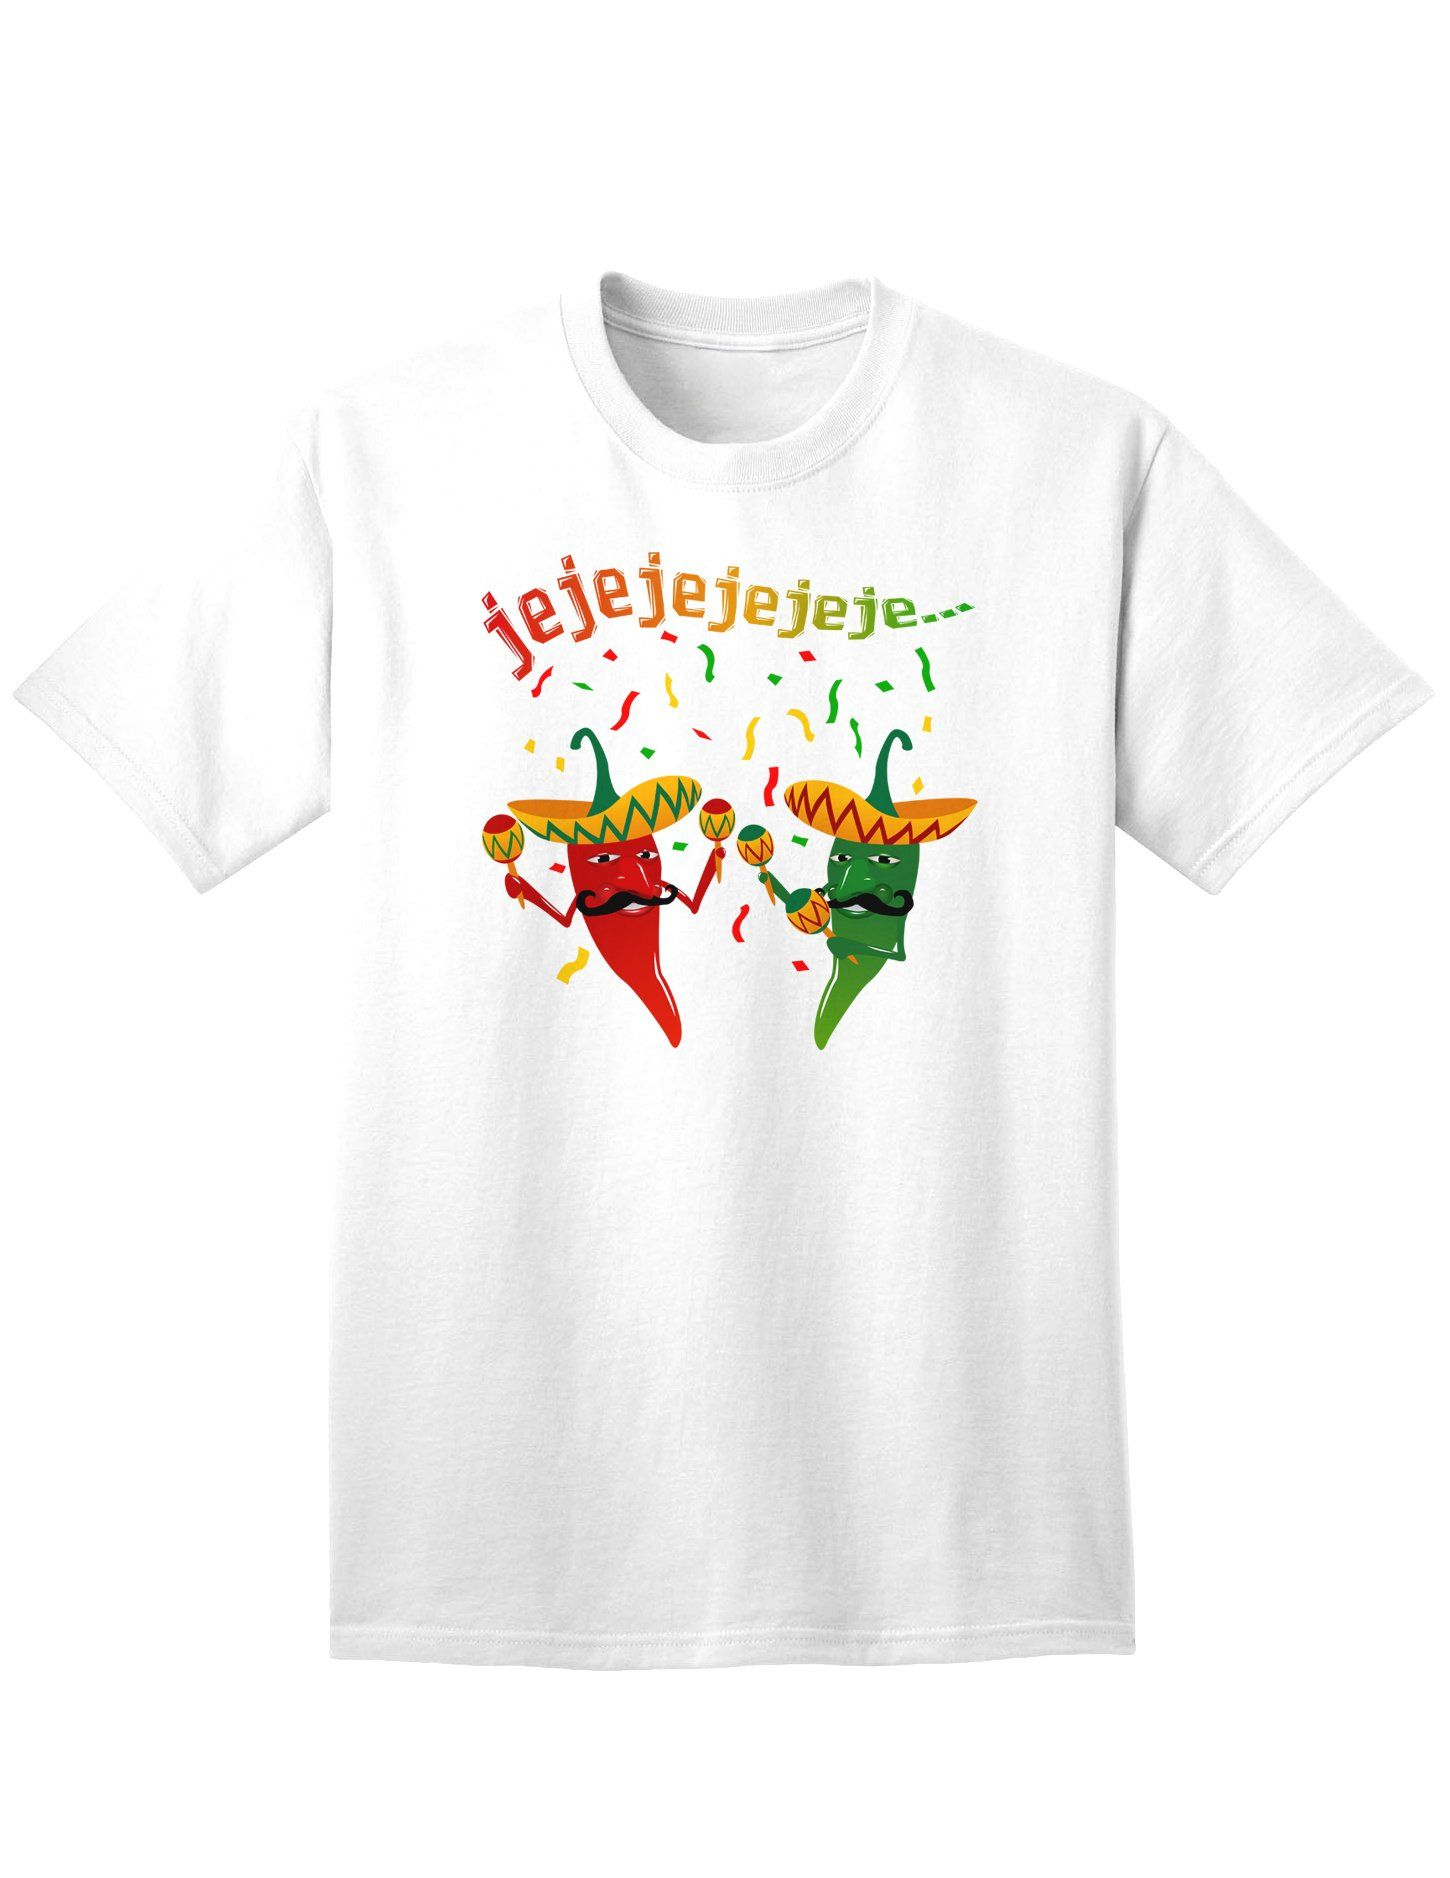 Jejeje Mexican Chili Peppers Adult T-Shirt